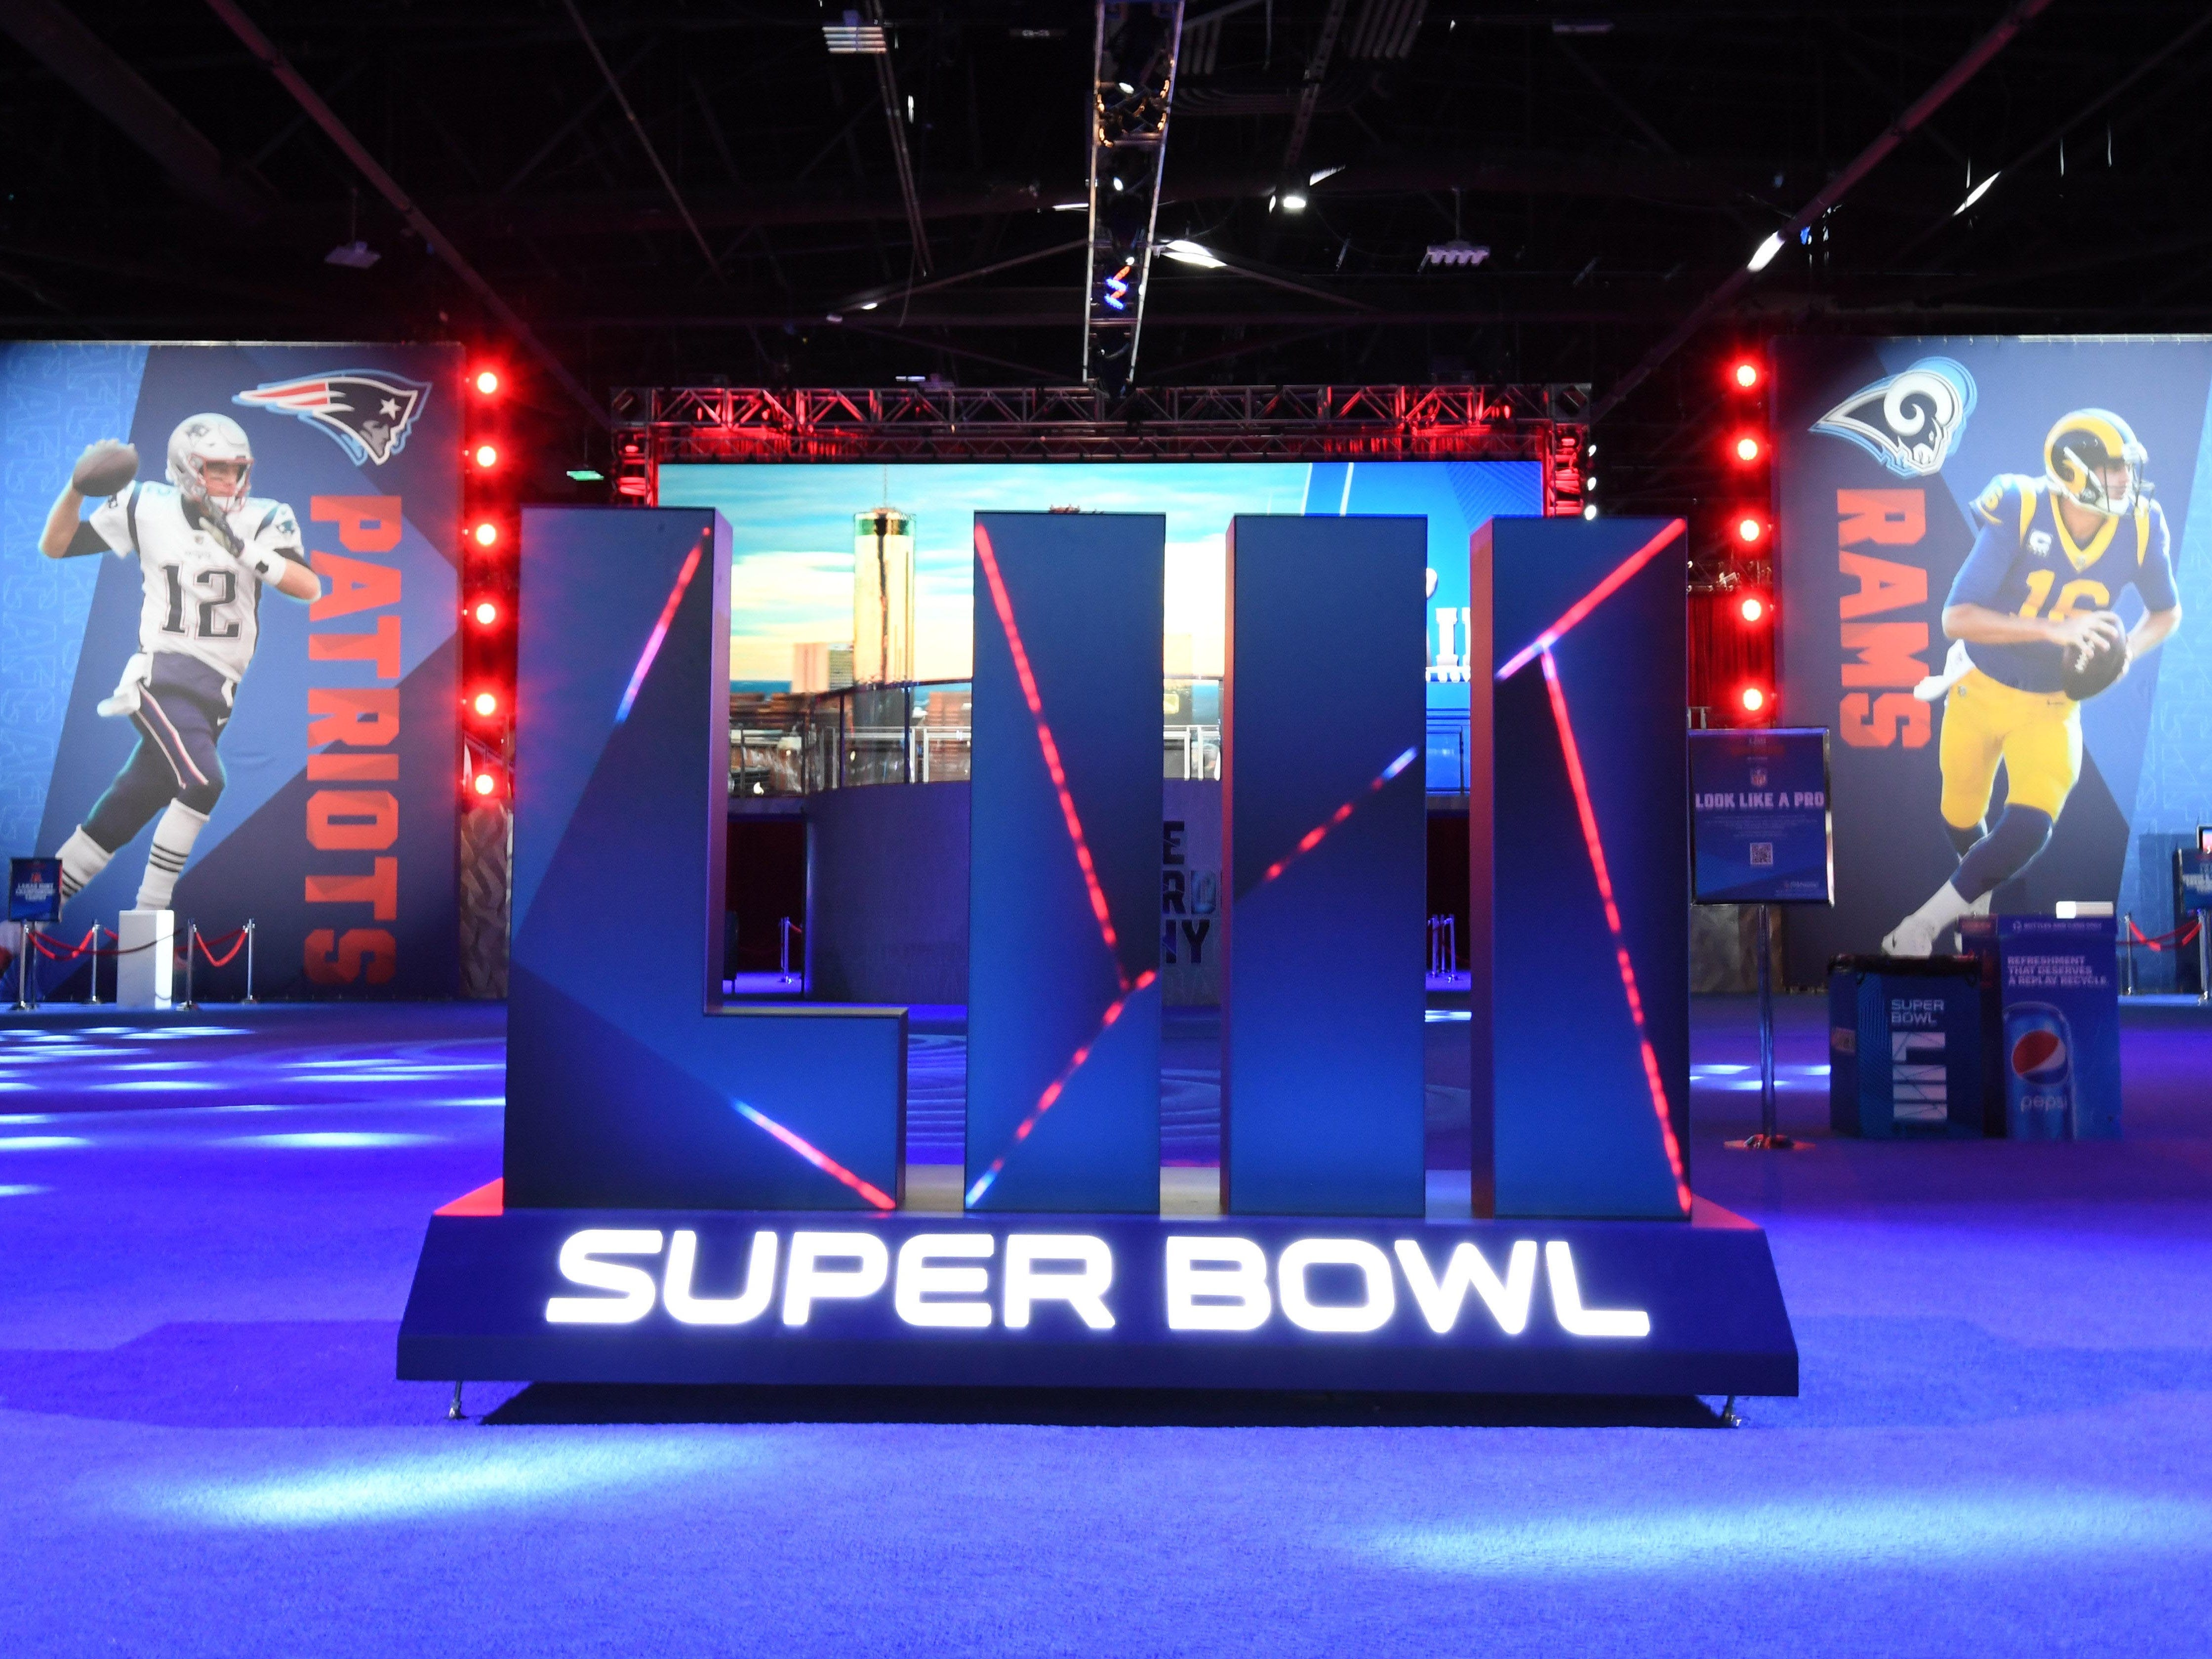 General overall view of Super Bowl LIII letters and images of New England Patriots quarterback Tom Brady (12) and Los Angeles Rams quarterback Jared Goff (16) at the NFL Experience at the Georgia World Congress Center.